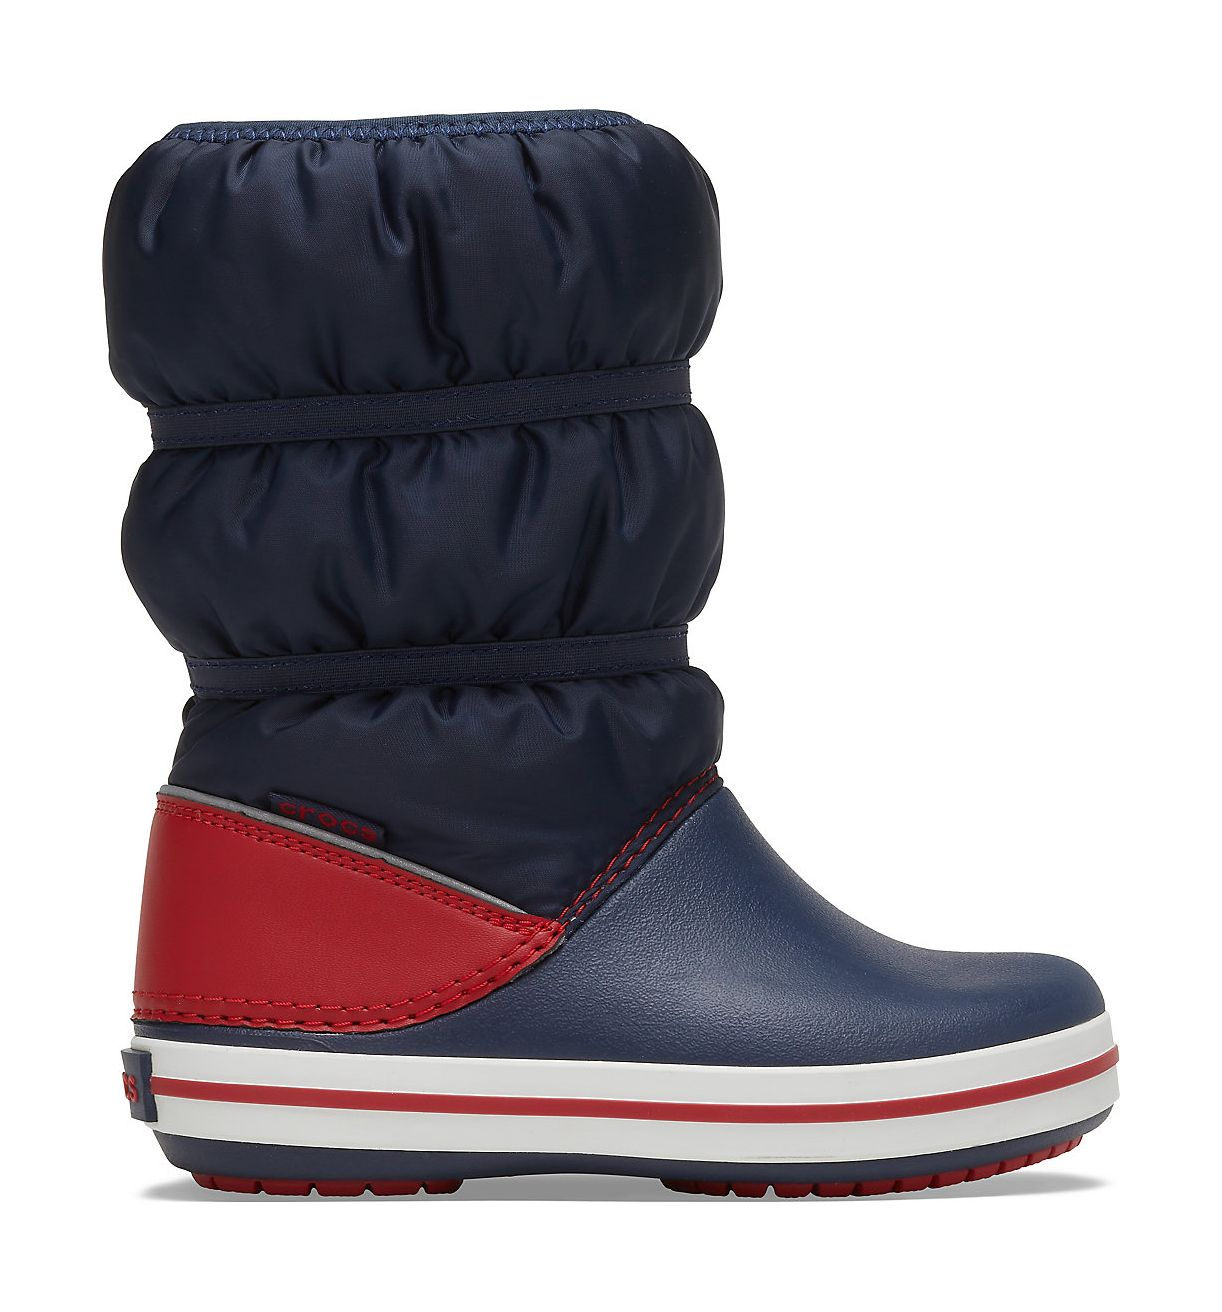 Crocs™ Crocband Winter Boot Kid's Navy/Red 27